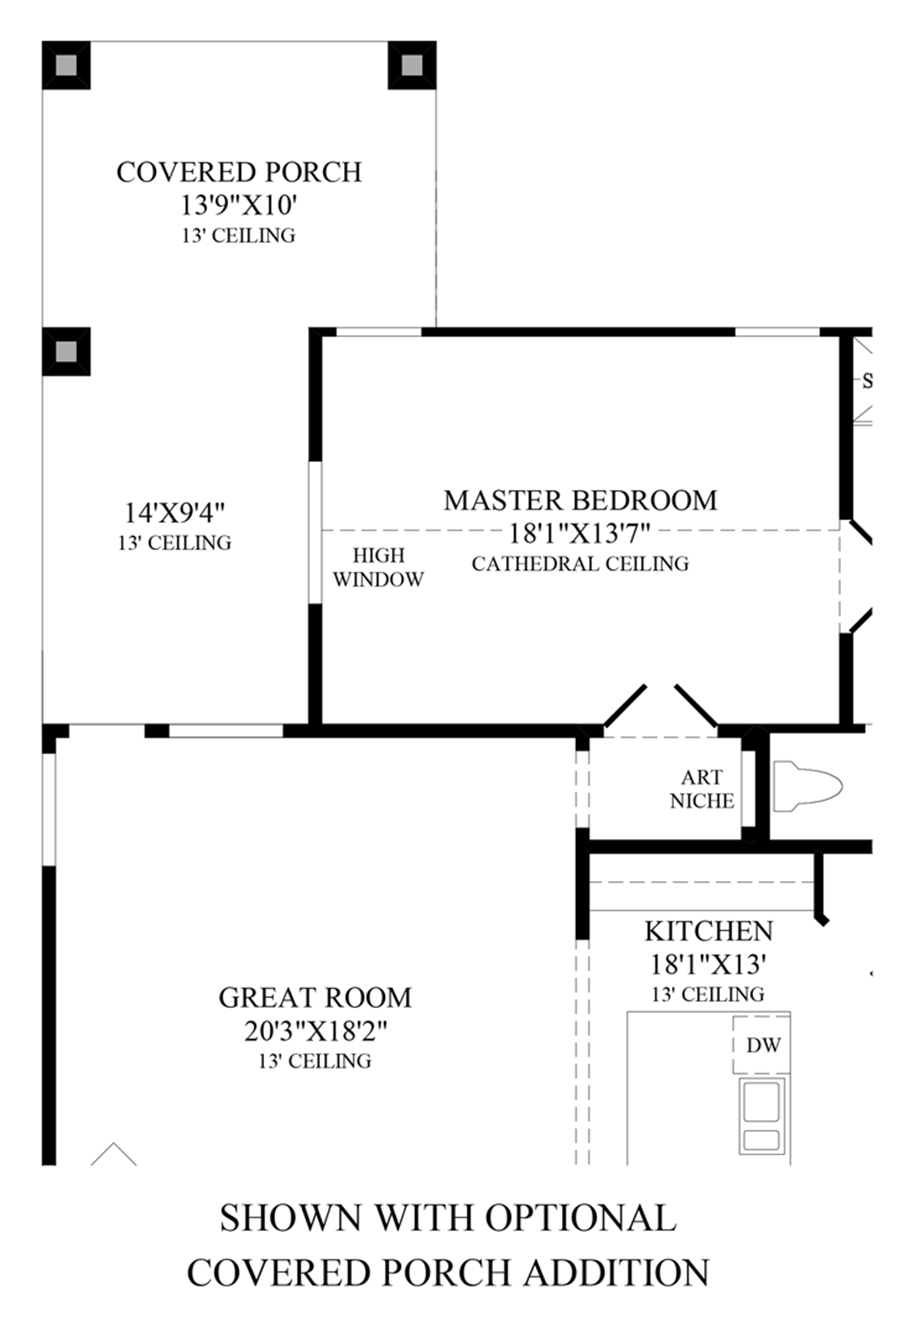 Optional Covered Porch Addition Floor Plan